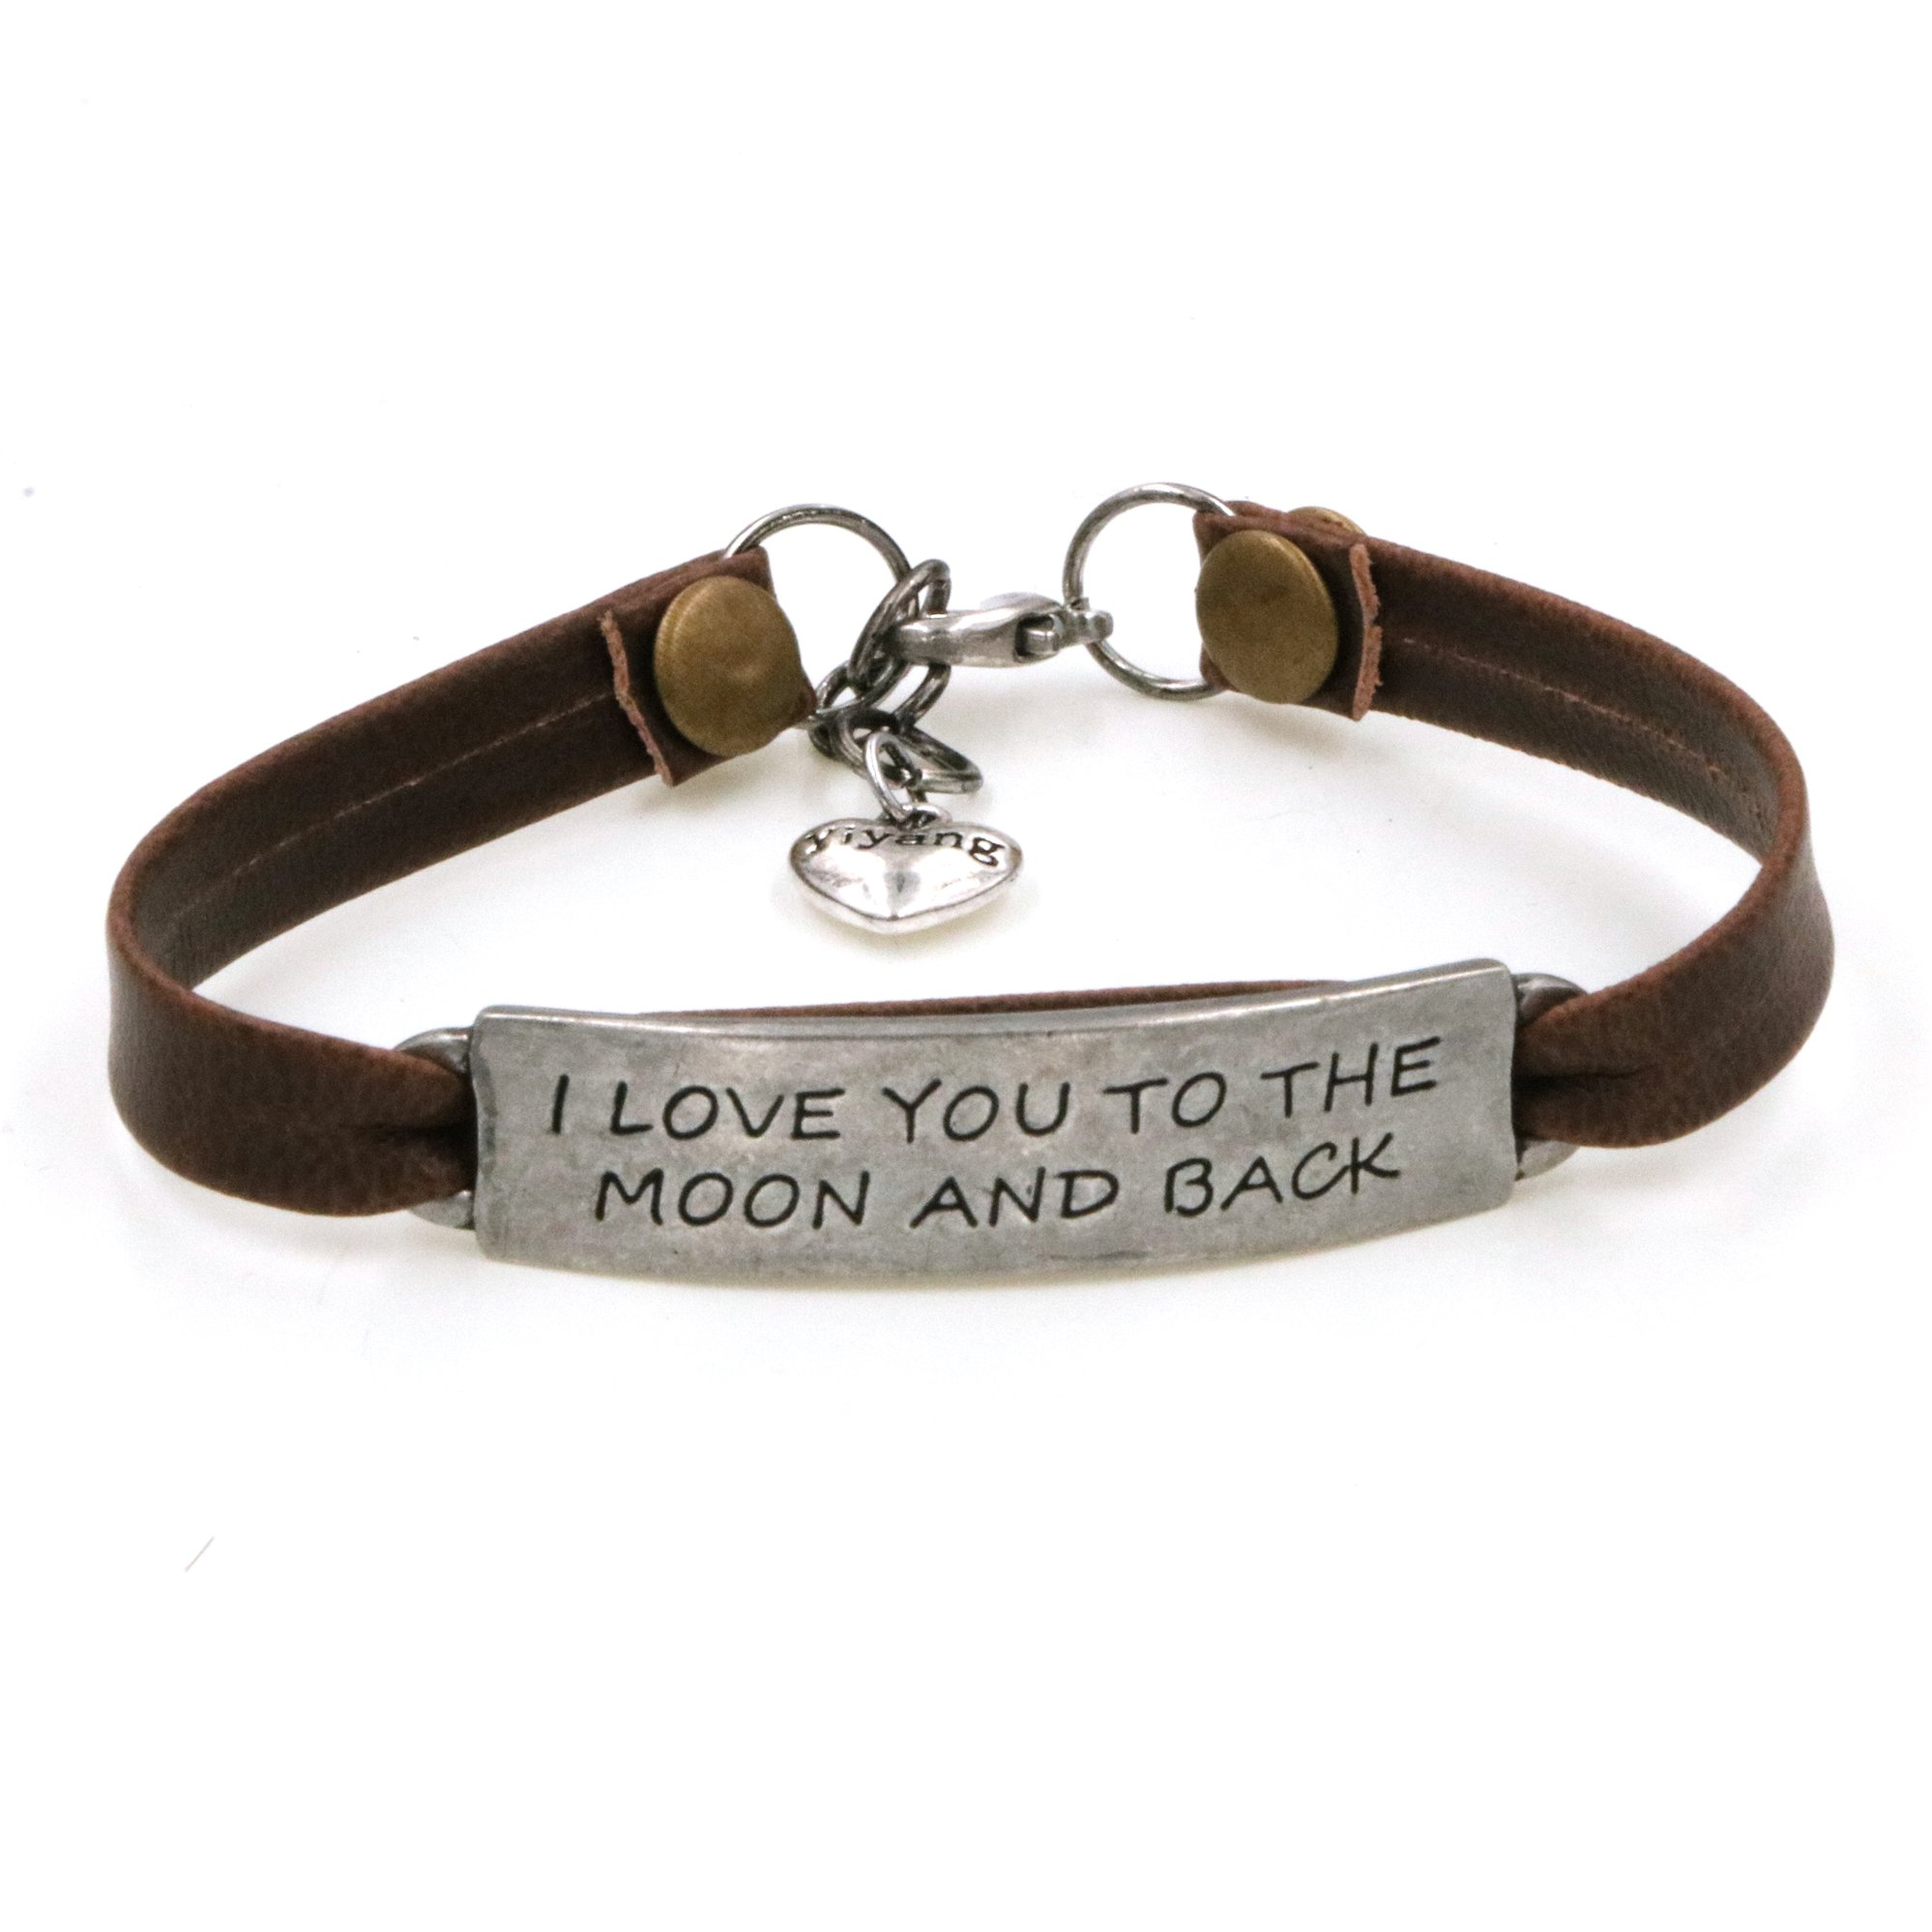 Yiyang Promise Bracelet Durable Brown Leather Bangle I Love You to the Moon and Back